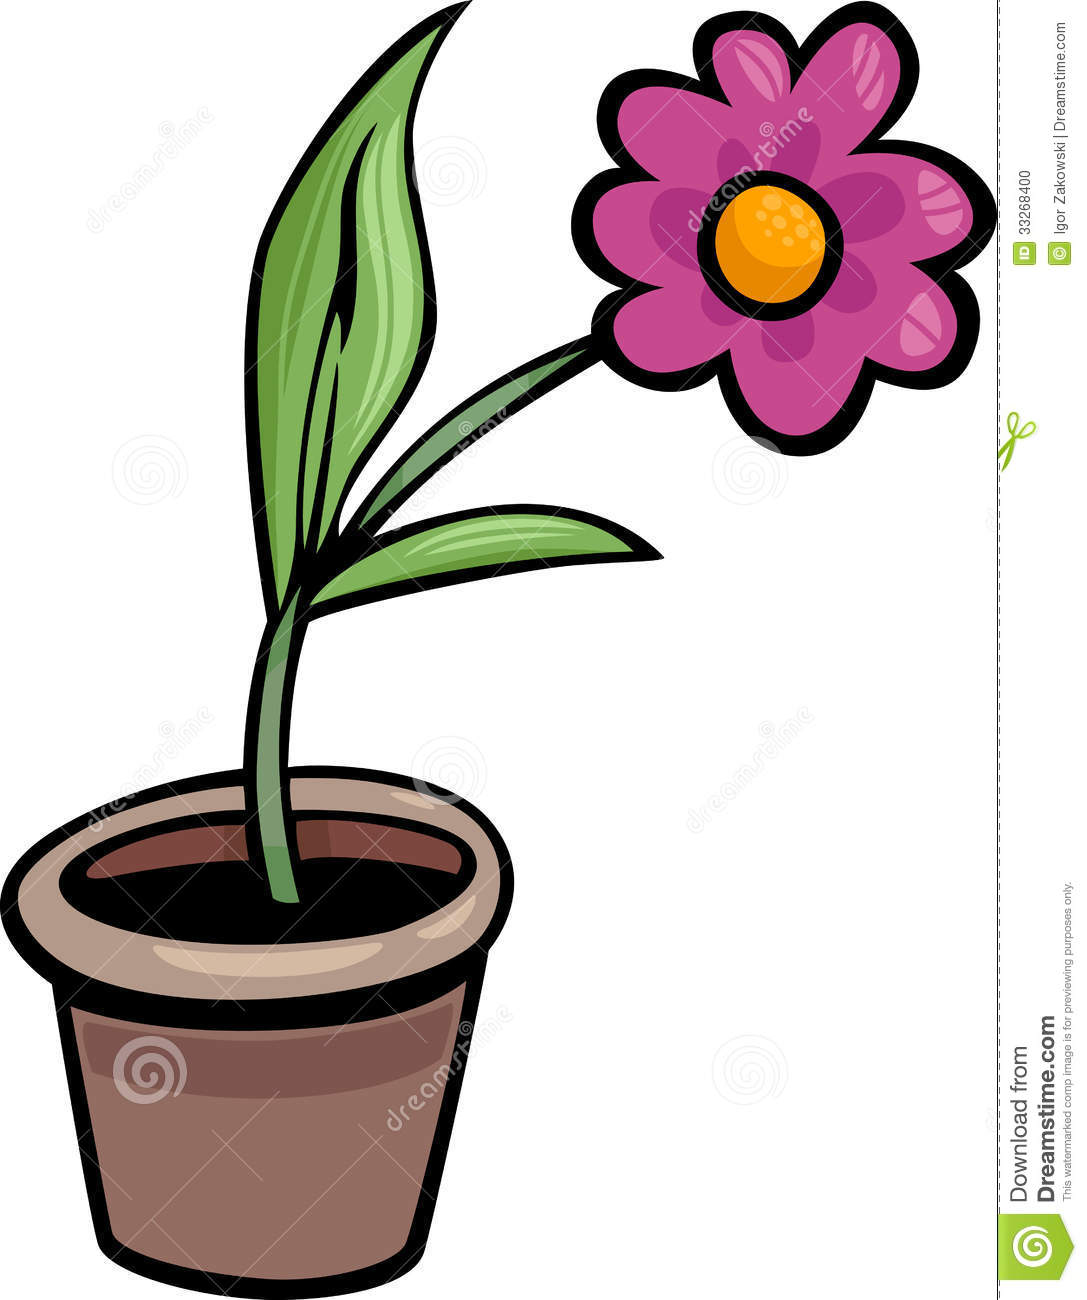 1087x1300 Surging Flower Cartoon Pictures Clip Art Images Of Flowers Clipart